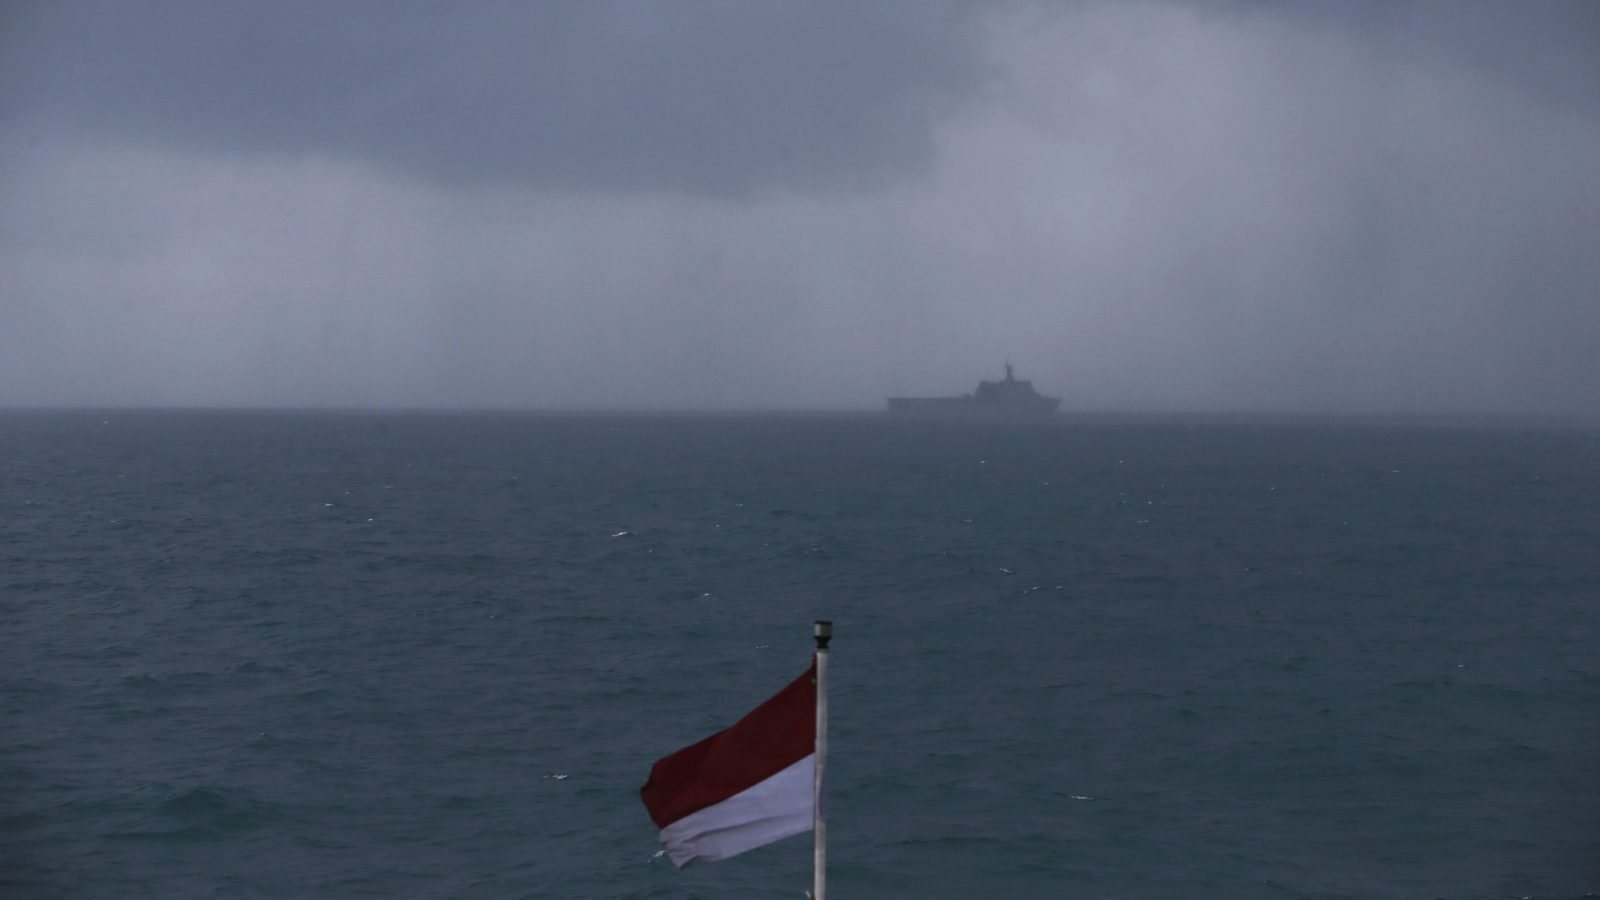 "The ship KRI Banda Aceh involved in a search operation for passengers onboard AirAsia Flight QZ8501 is seen on the horizon as dark clouds fill the sky, in the Java Sea January 4, 2015. Bad weather forced divers trying to identify sunken wreckage from the crashed AirAsia passenger jet to abort their mission on Sunday and Indonesian officials said they had not yet picked up any signals from the lost plane's ""black box"". The Airbus A320-200 crashed into the Java Sea about 40 minutes after taking off last Sunday from Indonesia's second-largest city Surabaya en route for Singapore. There were no survivors.     REUTERS/Beawiharta (INDONESIA - Tags: DISASTER ENVIRONMENT MARITIME TRANSPORT) - RTR4K0N7"